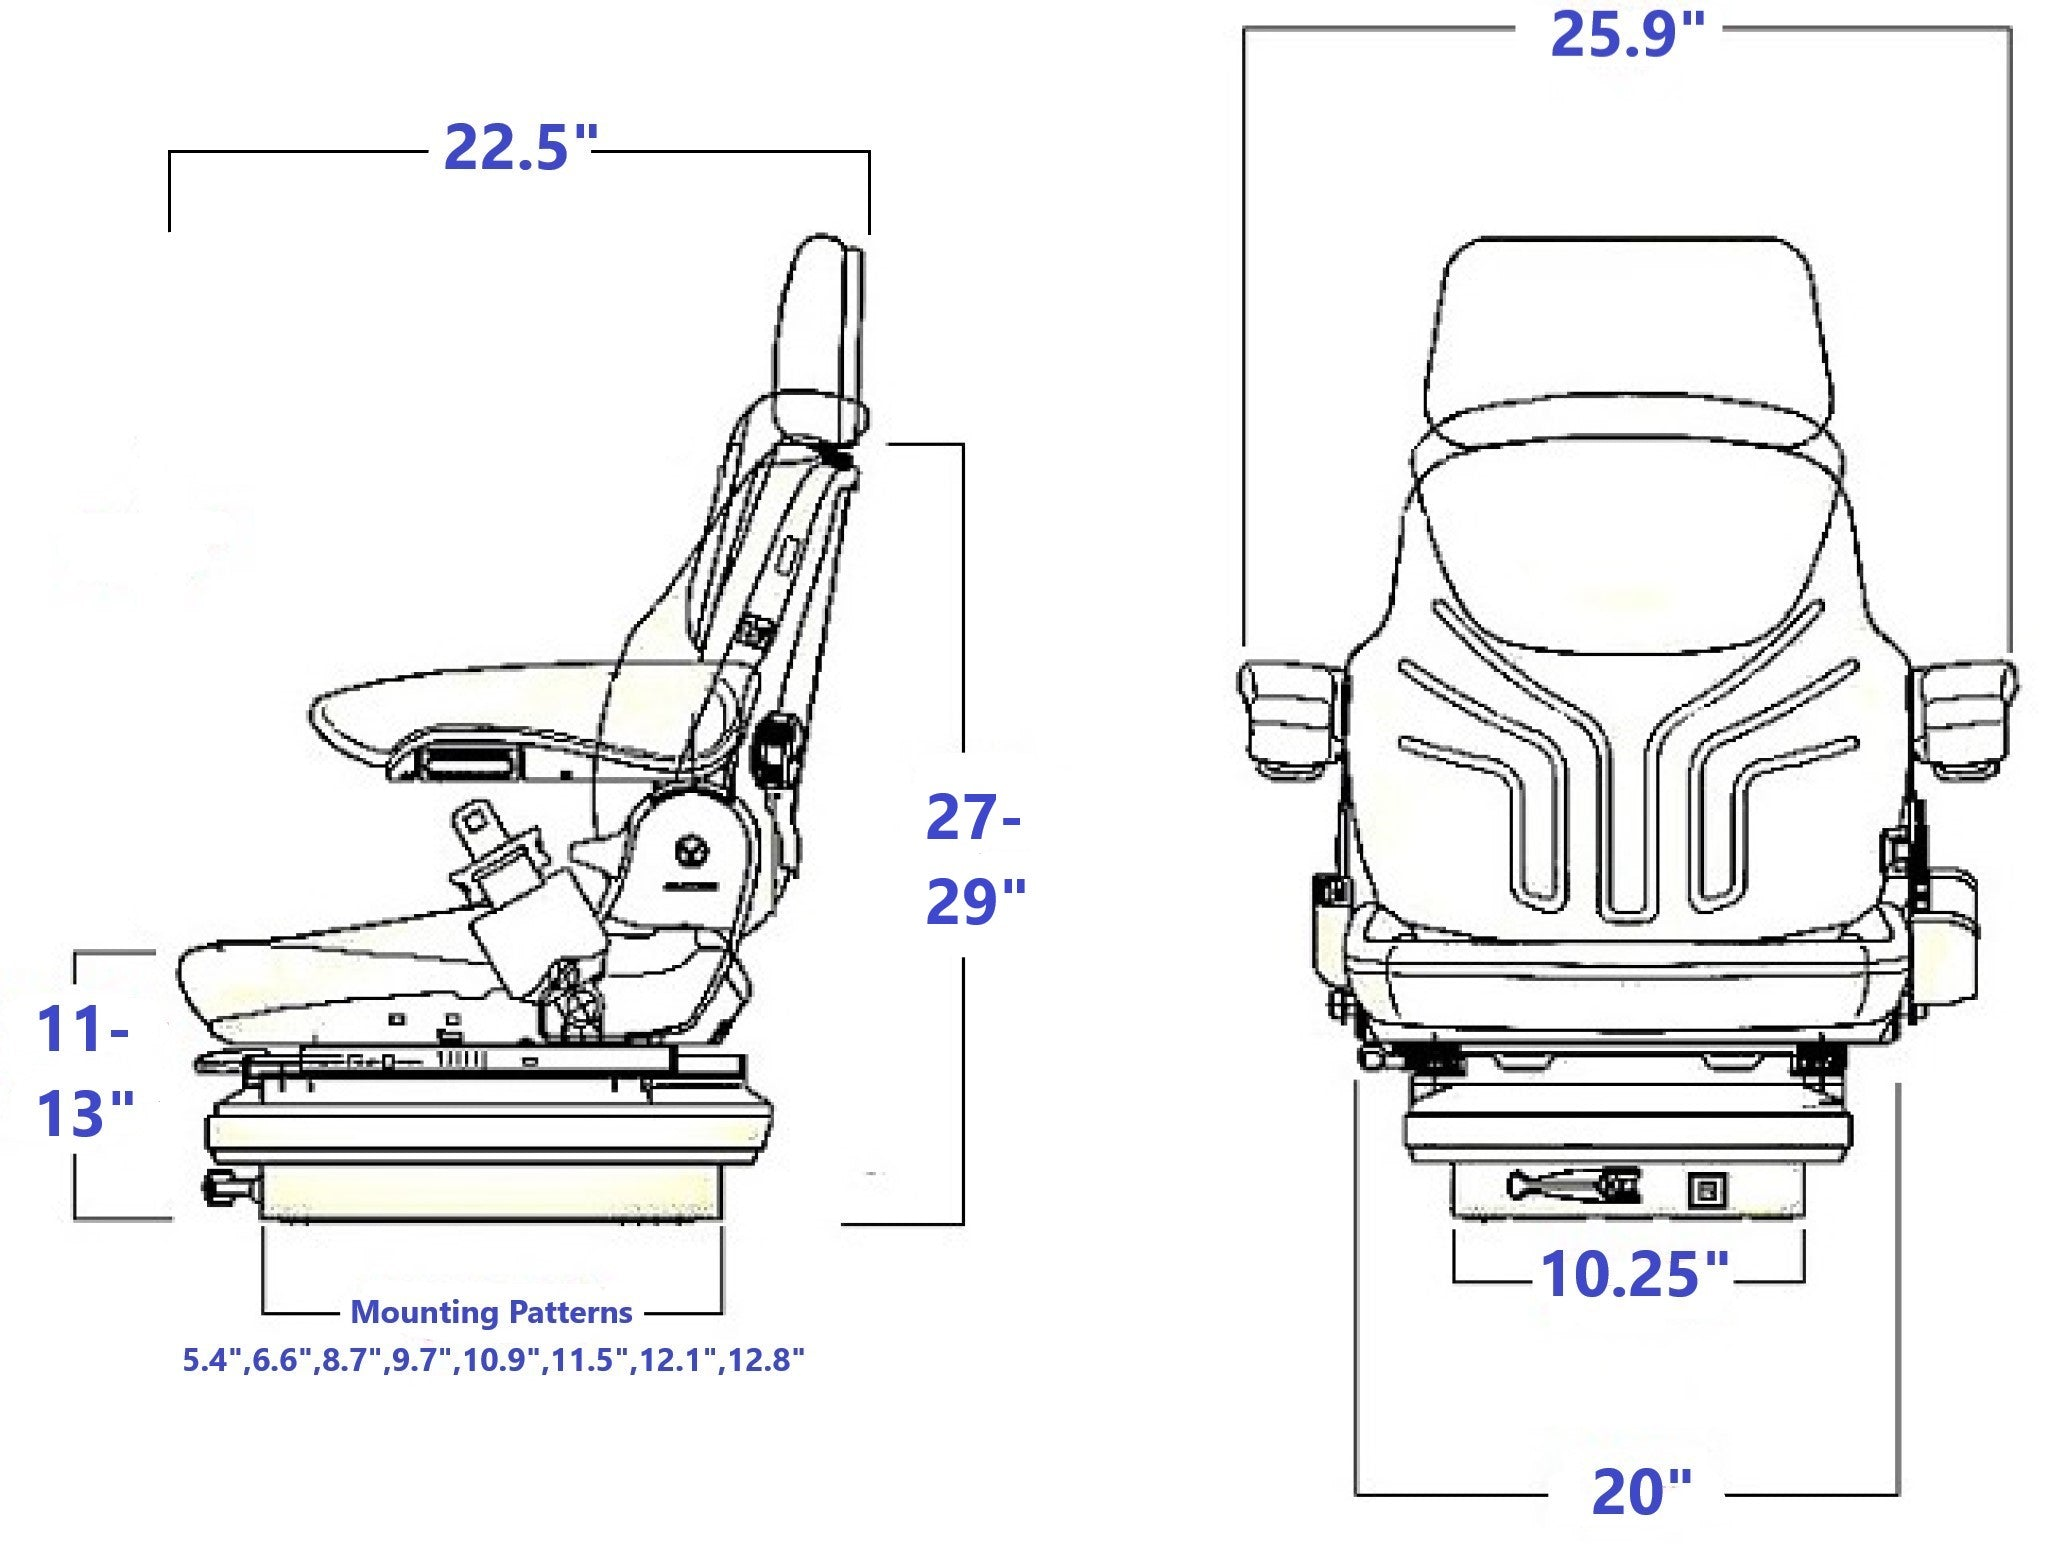 Grammer MSG85/731 Technical Drawing